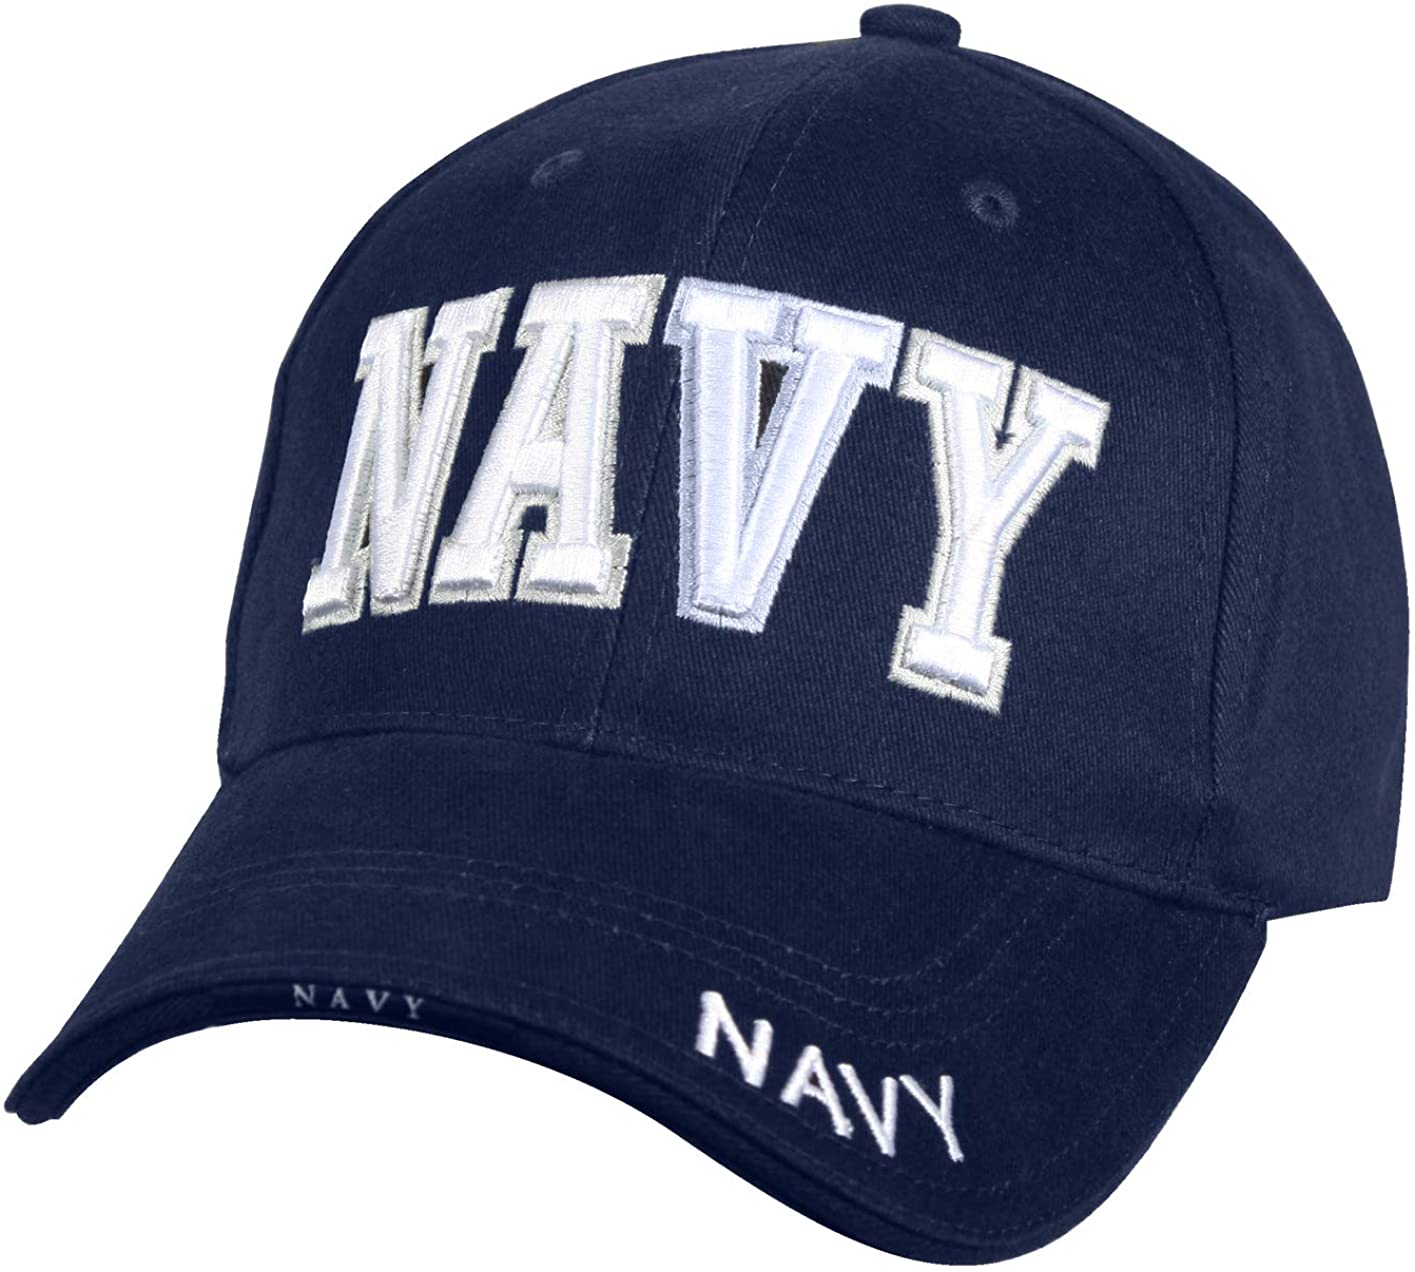 Rothco Deluxe Navy Low Profile Cap